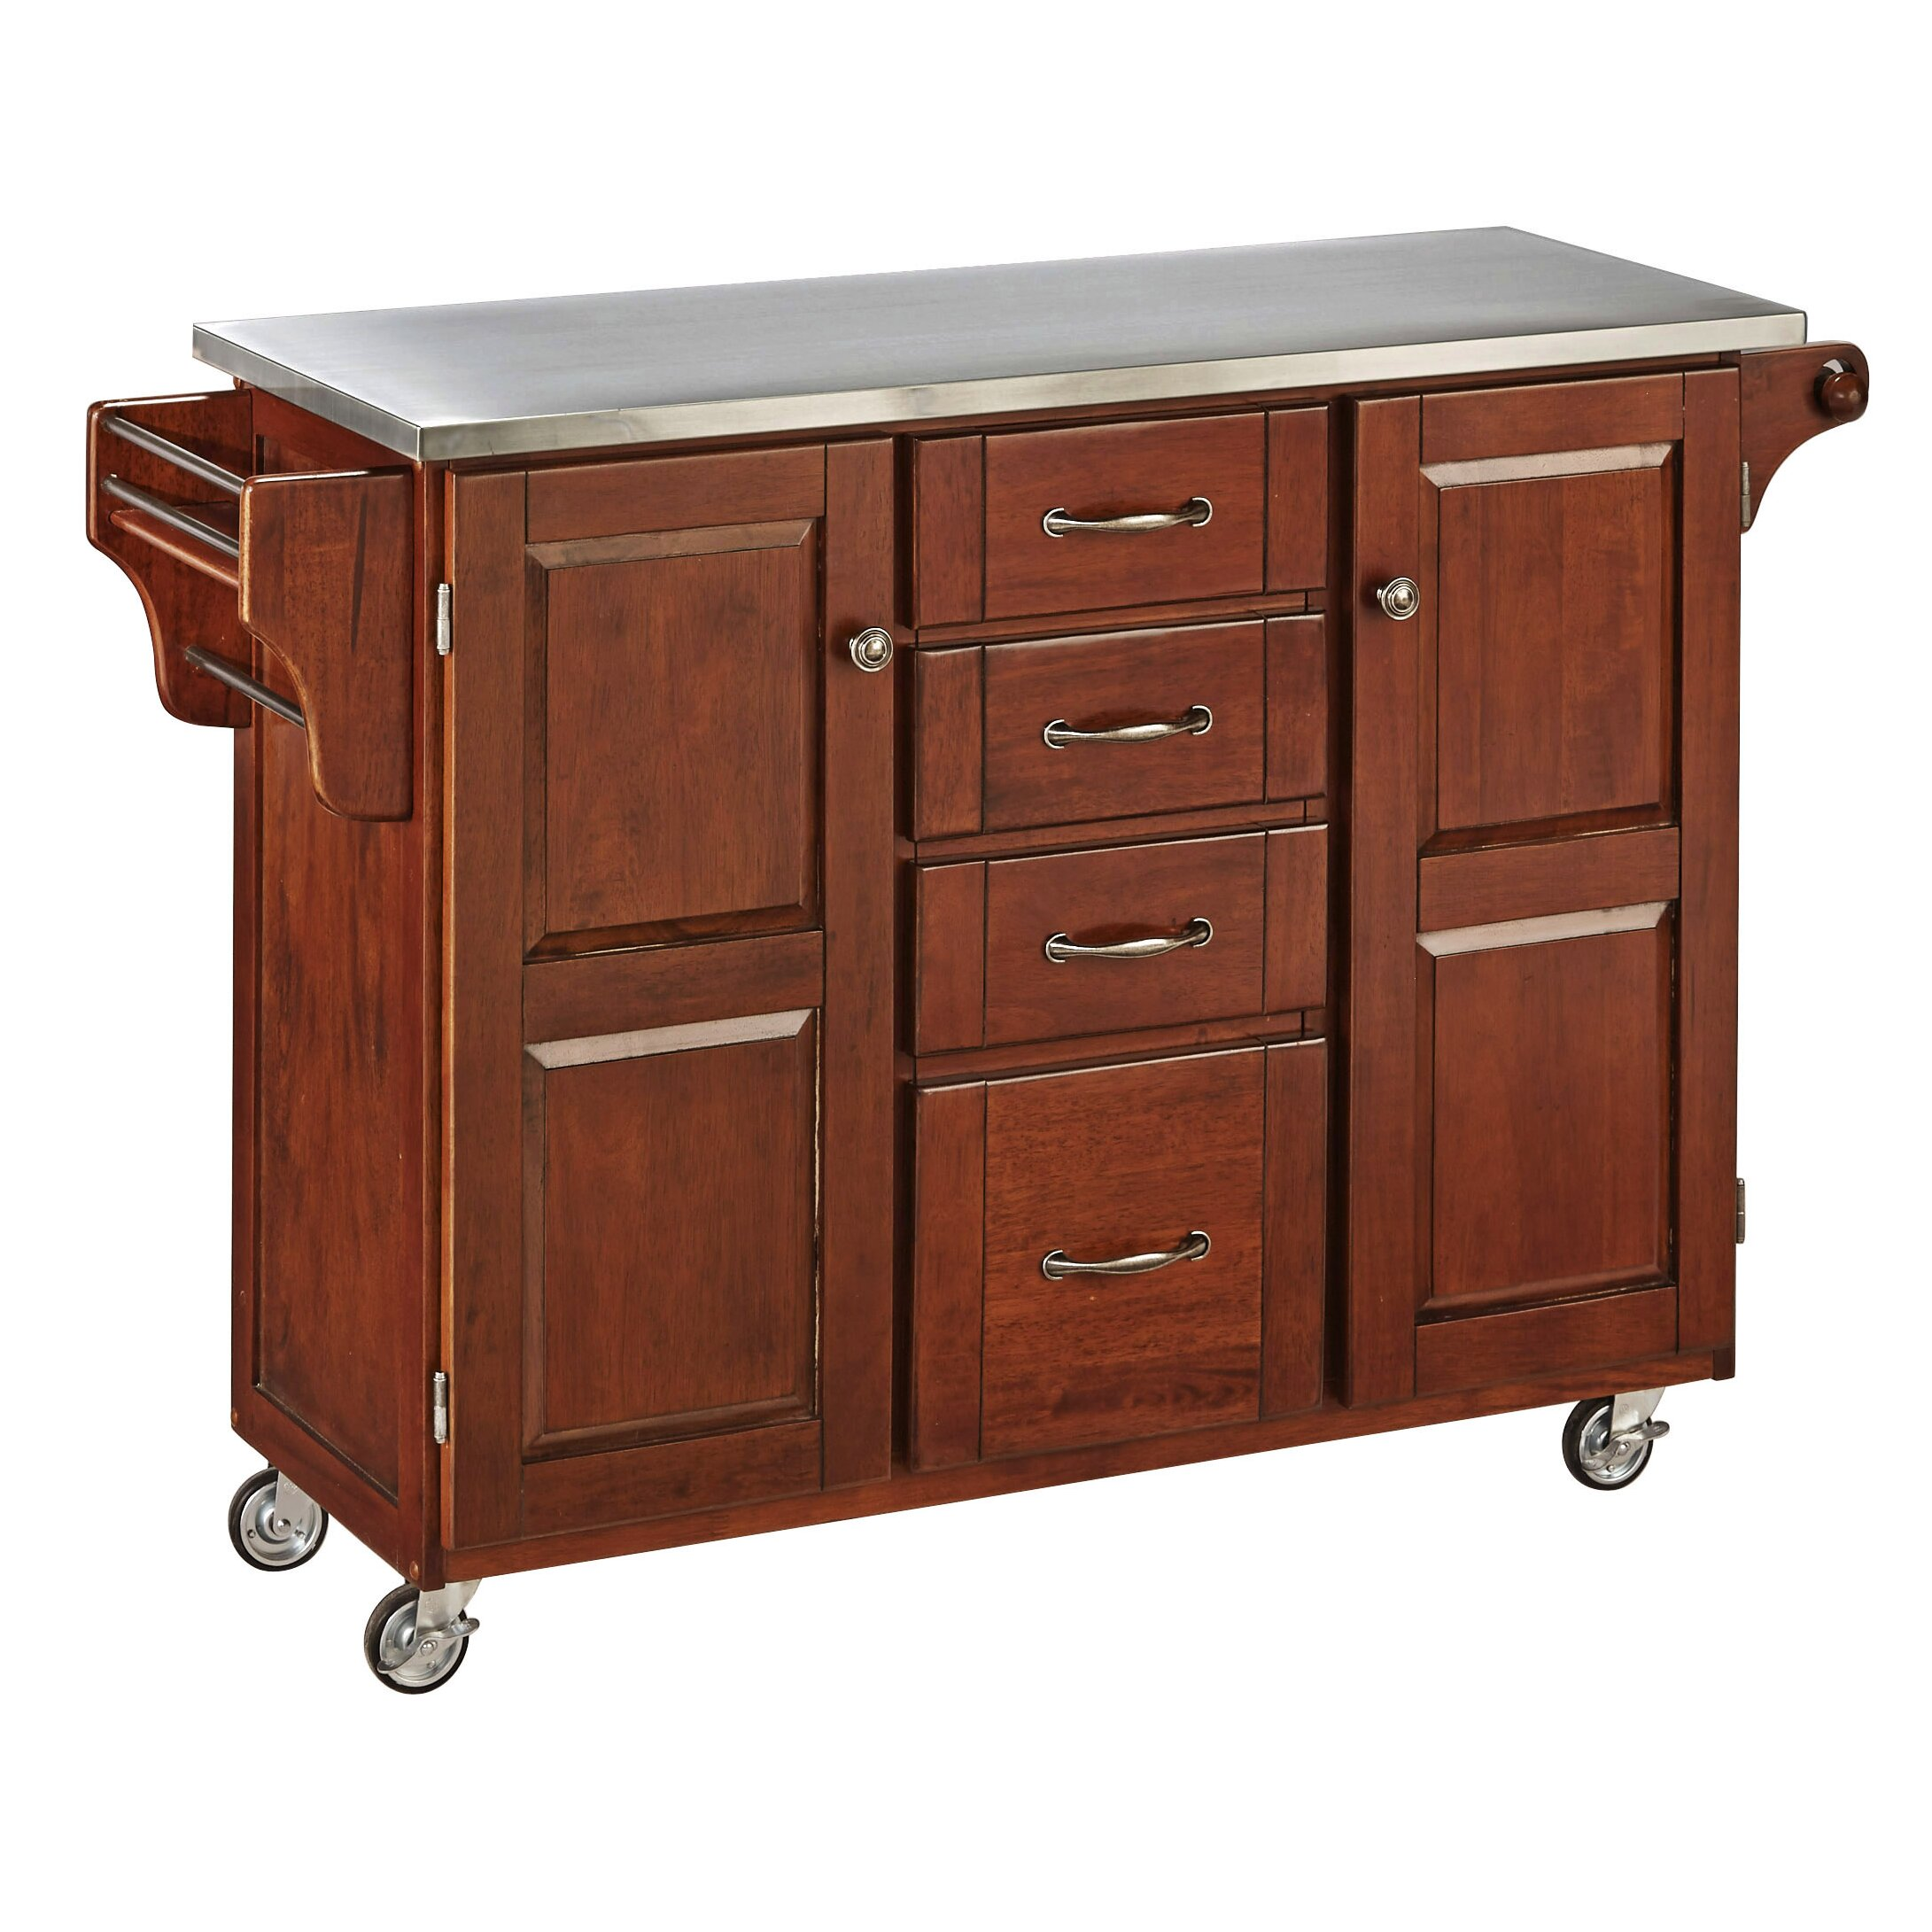 Cocina Kitchen Cart With Stainless Steel Top: August Grove Adelle-a-Cart Kitchen Island With Stainless